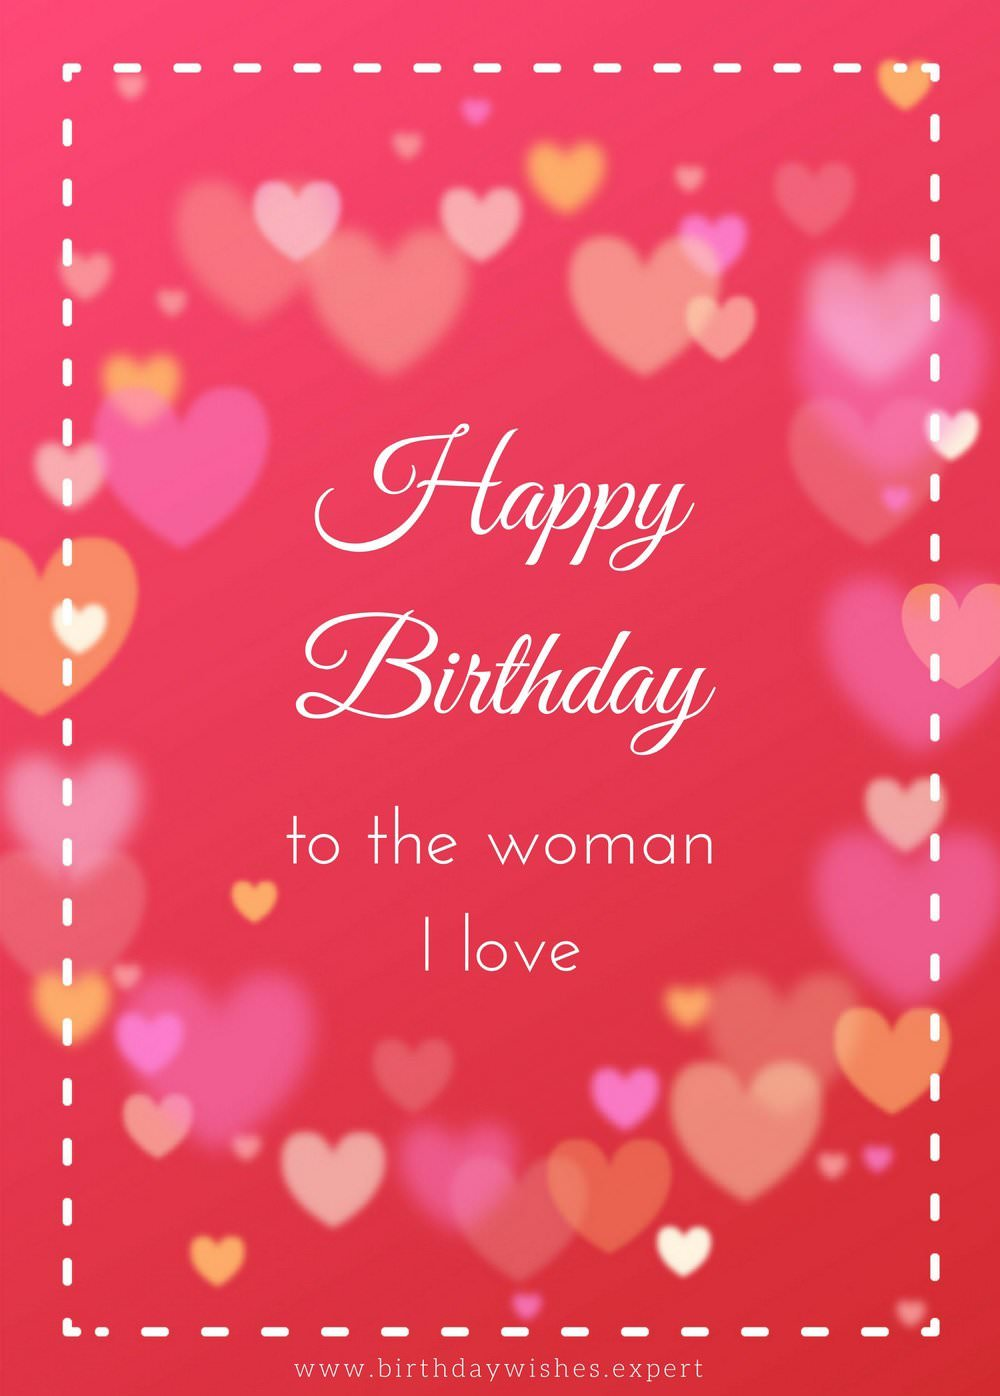 romantic birthday card messages for wife ; Happy-Birthday-to-the-woman-I-love